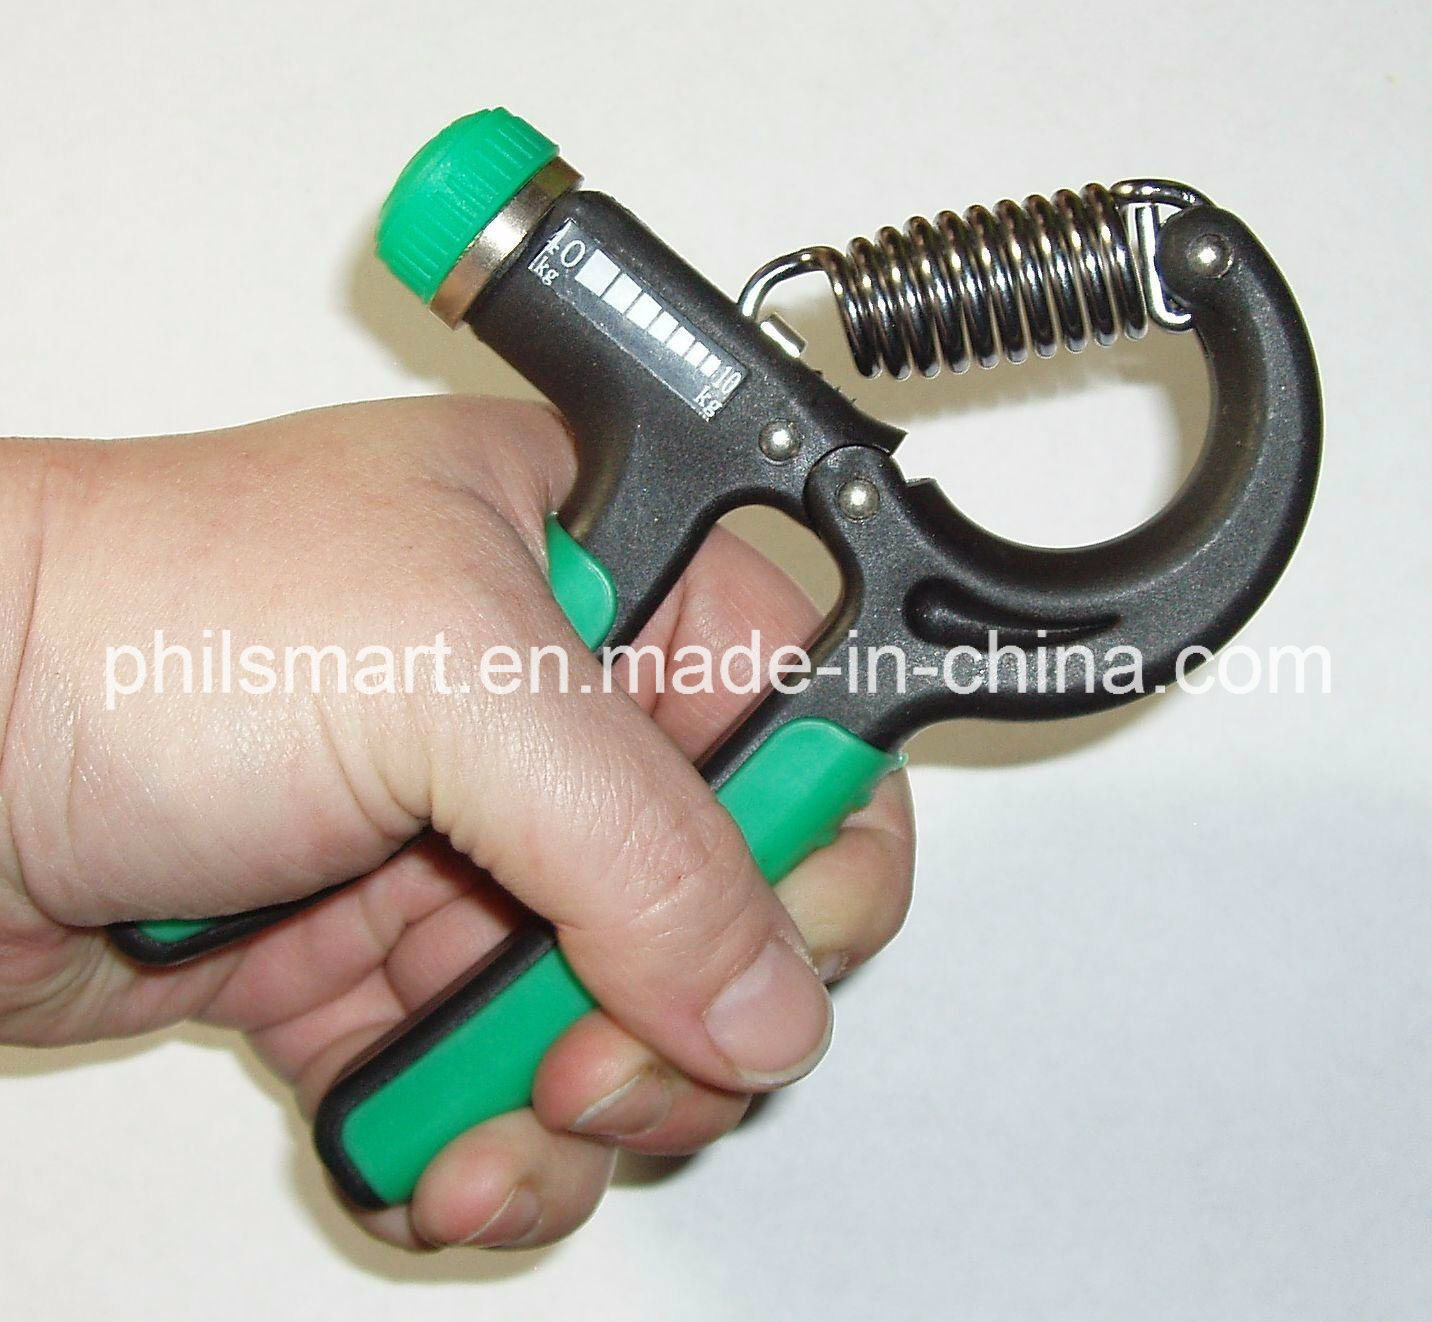 New Adjustable Fitness Gym Exercise Hand Grips